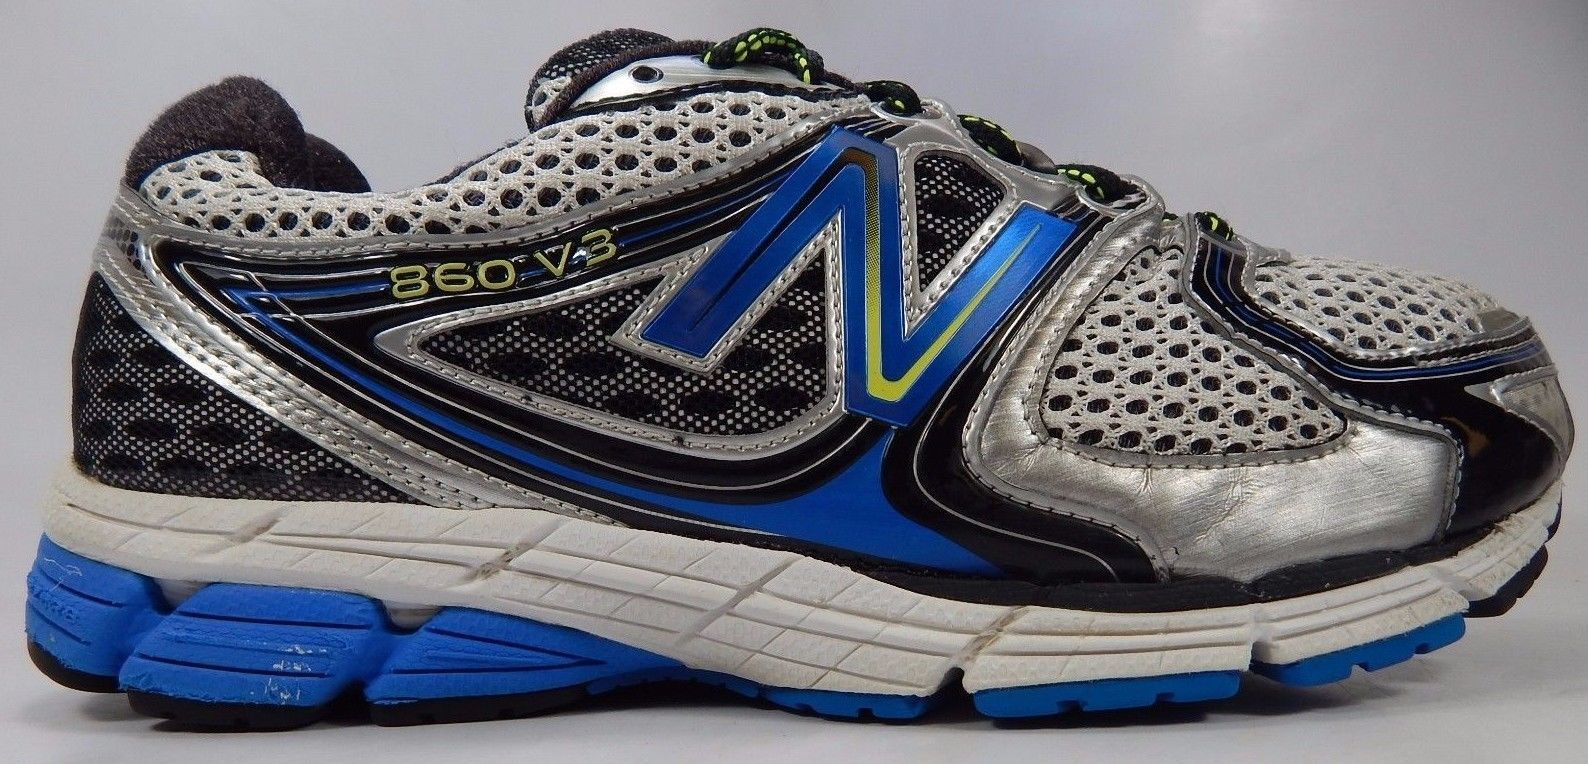 low priced f7def c4157 New Balance 860 v3 Men s Running Shoes Size US 9.5 4E EXTRA WIDE EU 43  M860SB3